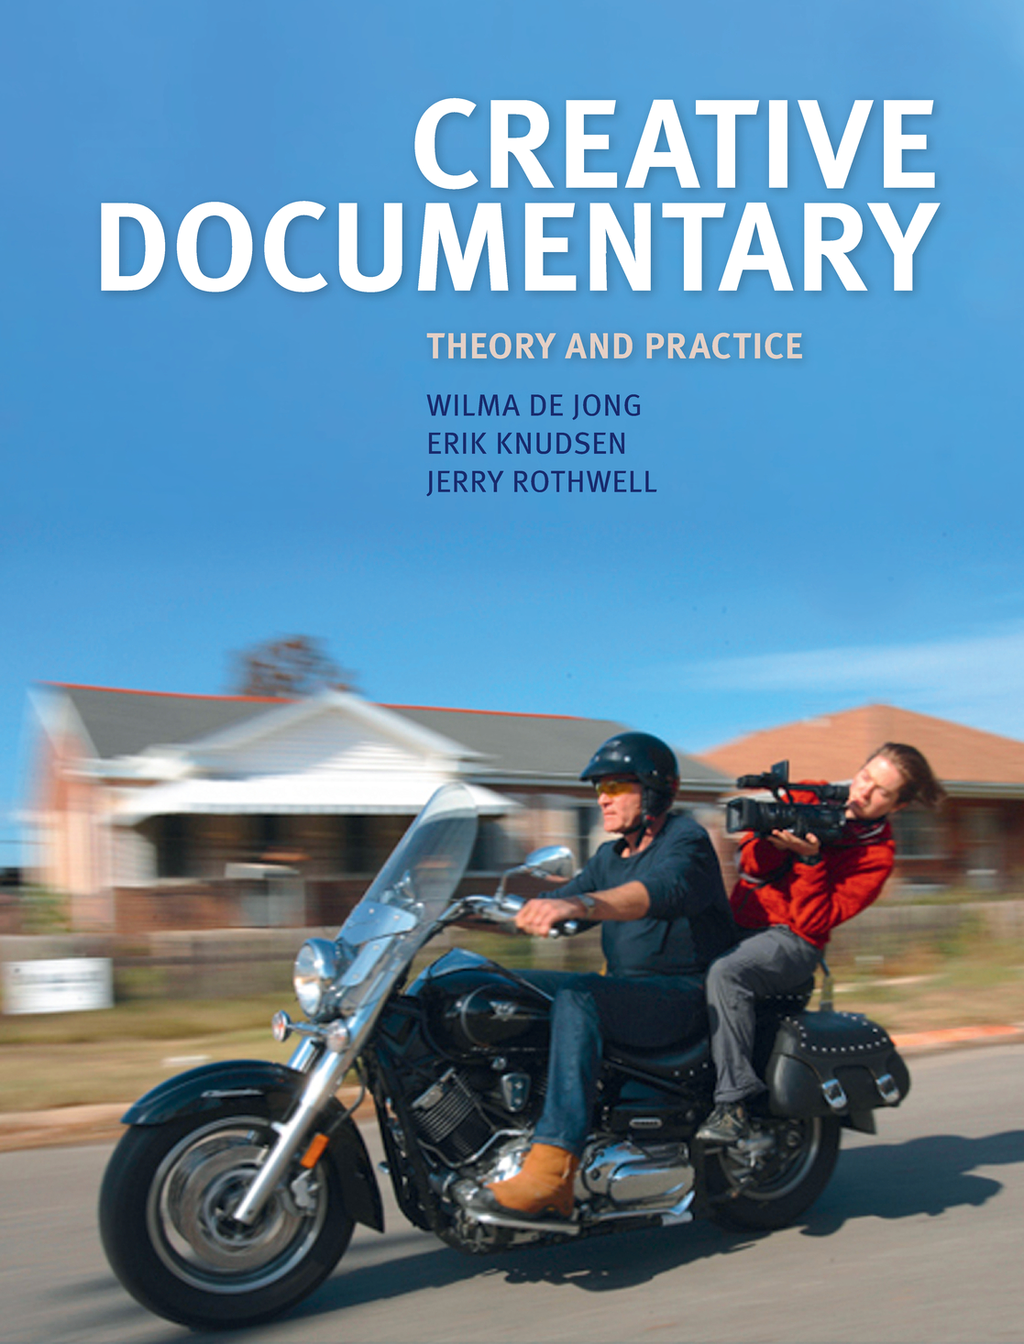 Creative Documentary Theory and Practice